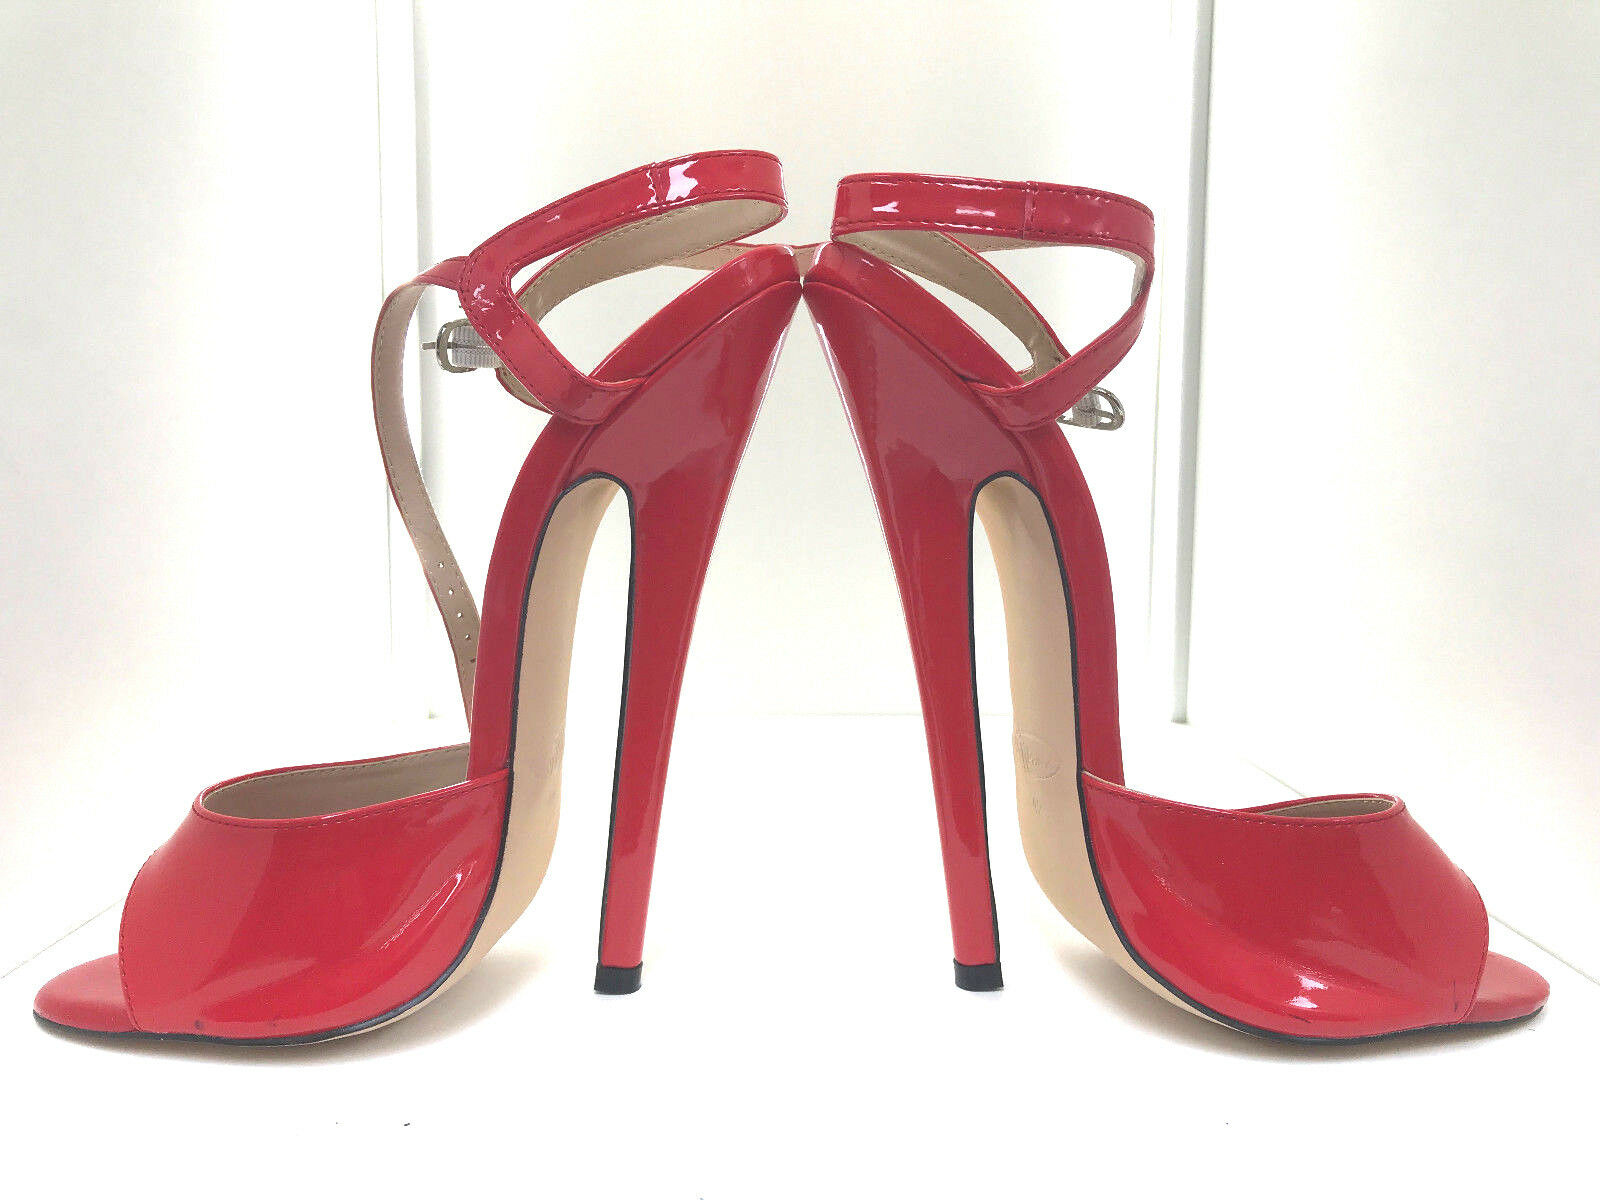 Sexy 7  bedheels rot rot rot patent SM BDSM mules sandals 42 43 19cm high heels straps 5c58a1